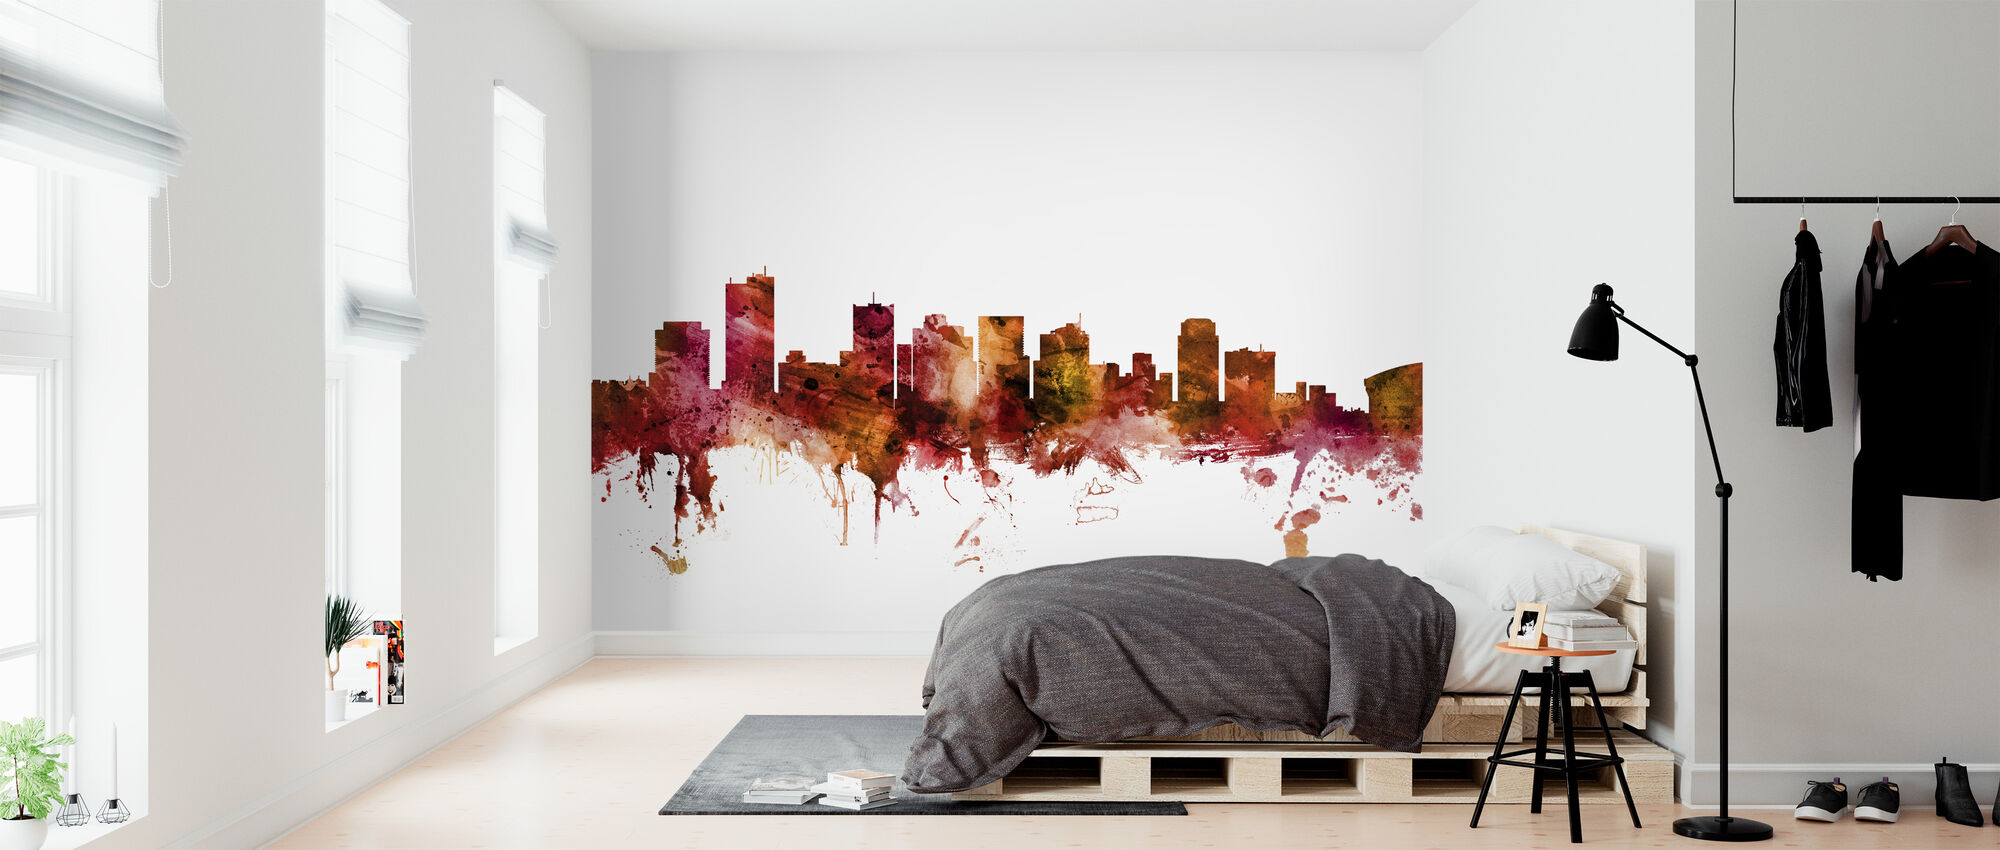 Phoenix Arizona Skyline - Wallpaper - Bedroom